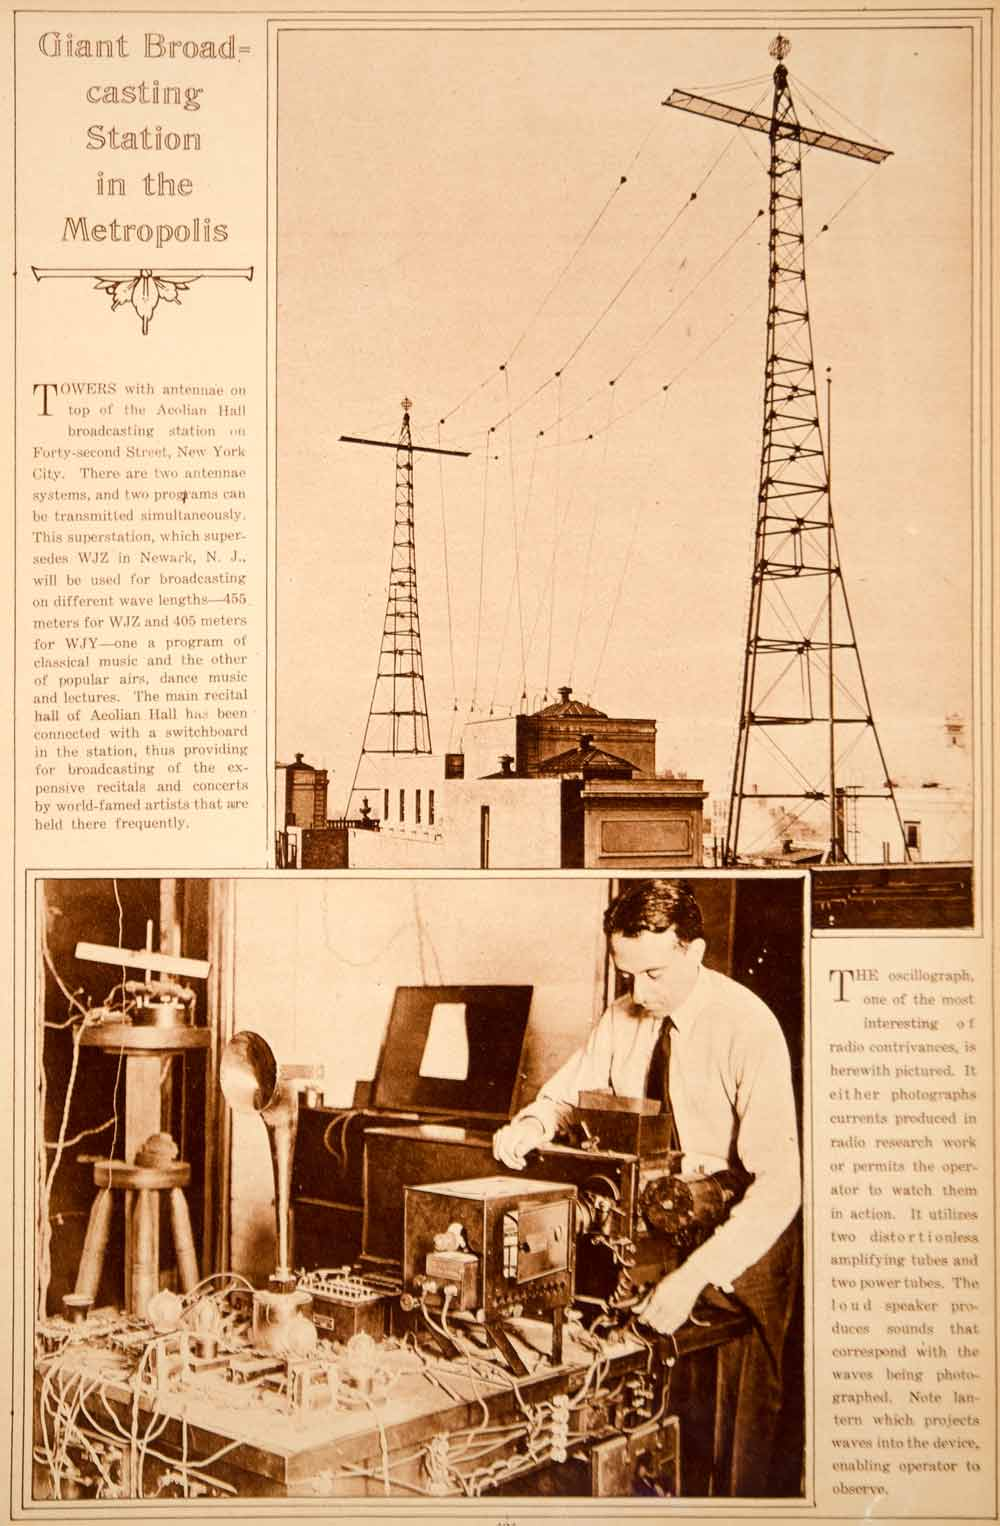 1923 Rotogravure Radio WJZ WJY Antenna Towers Aeolian Hall Roof NYC Broadcasting